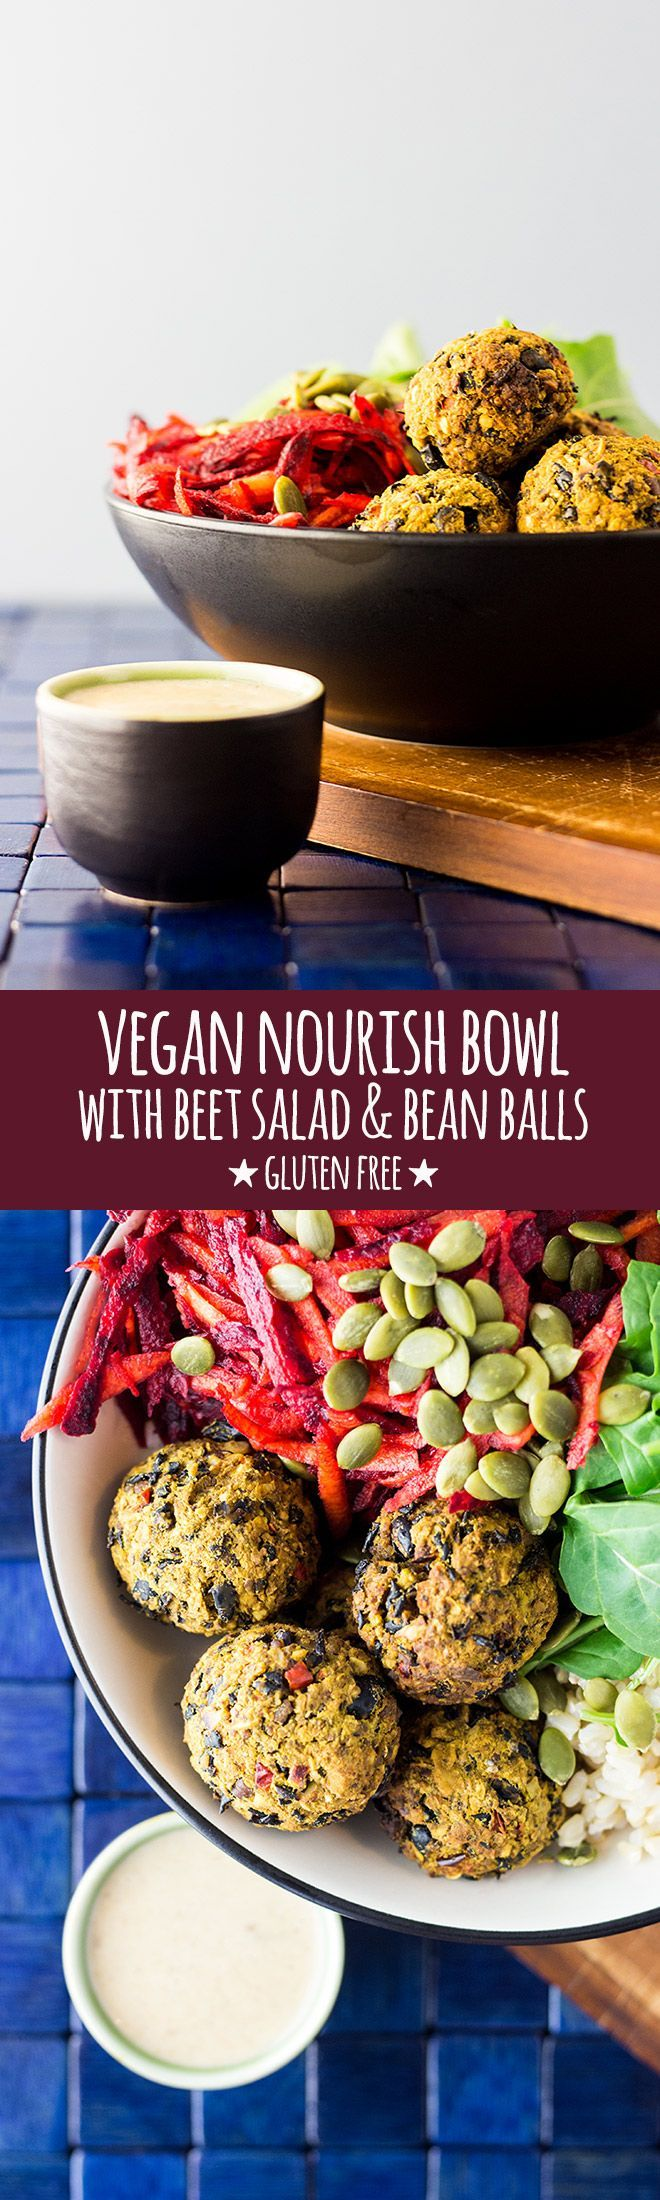 This tasty vegan nourish bowl with beet salad and black bean, walnut and turmeric balls will help you recharge in all the right ways. via @Quite Good Food